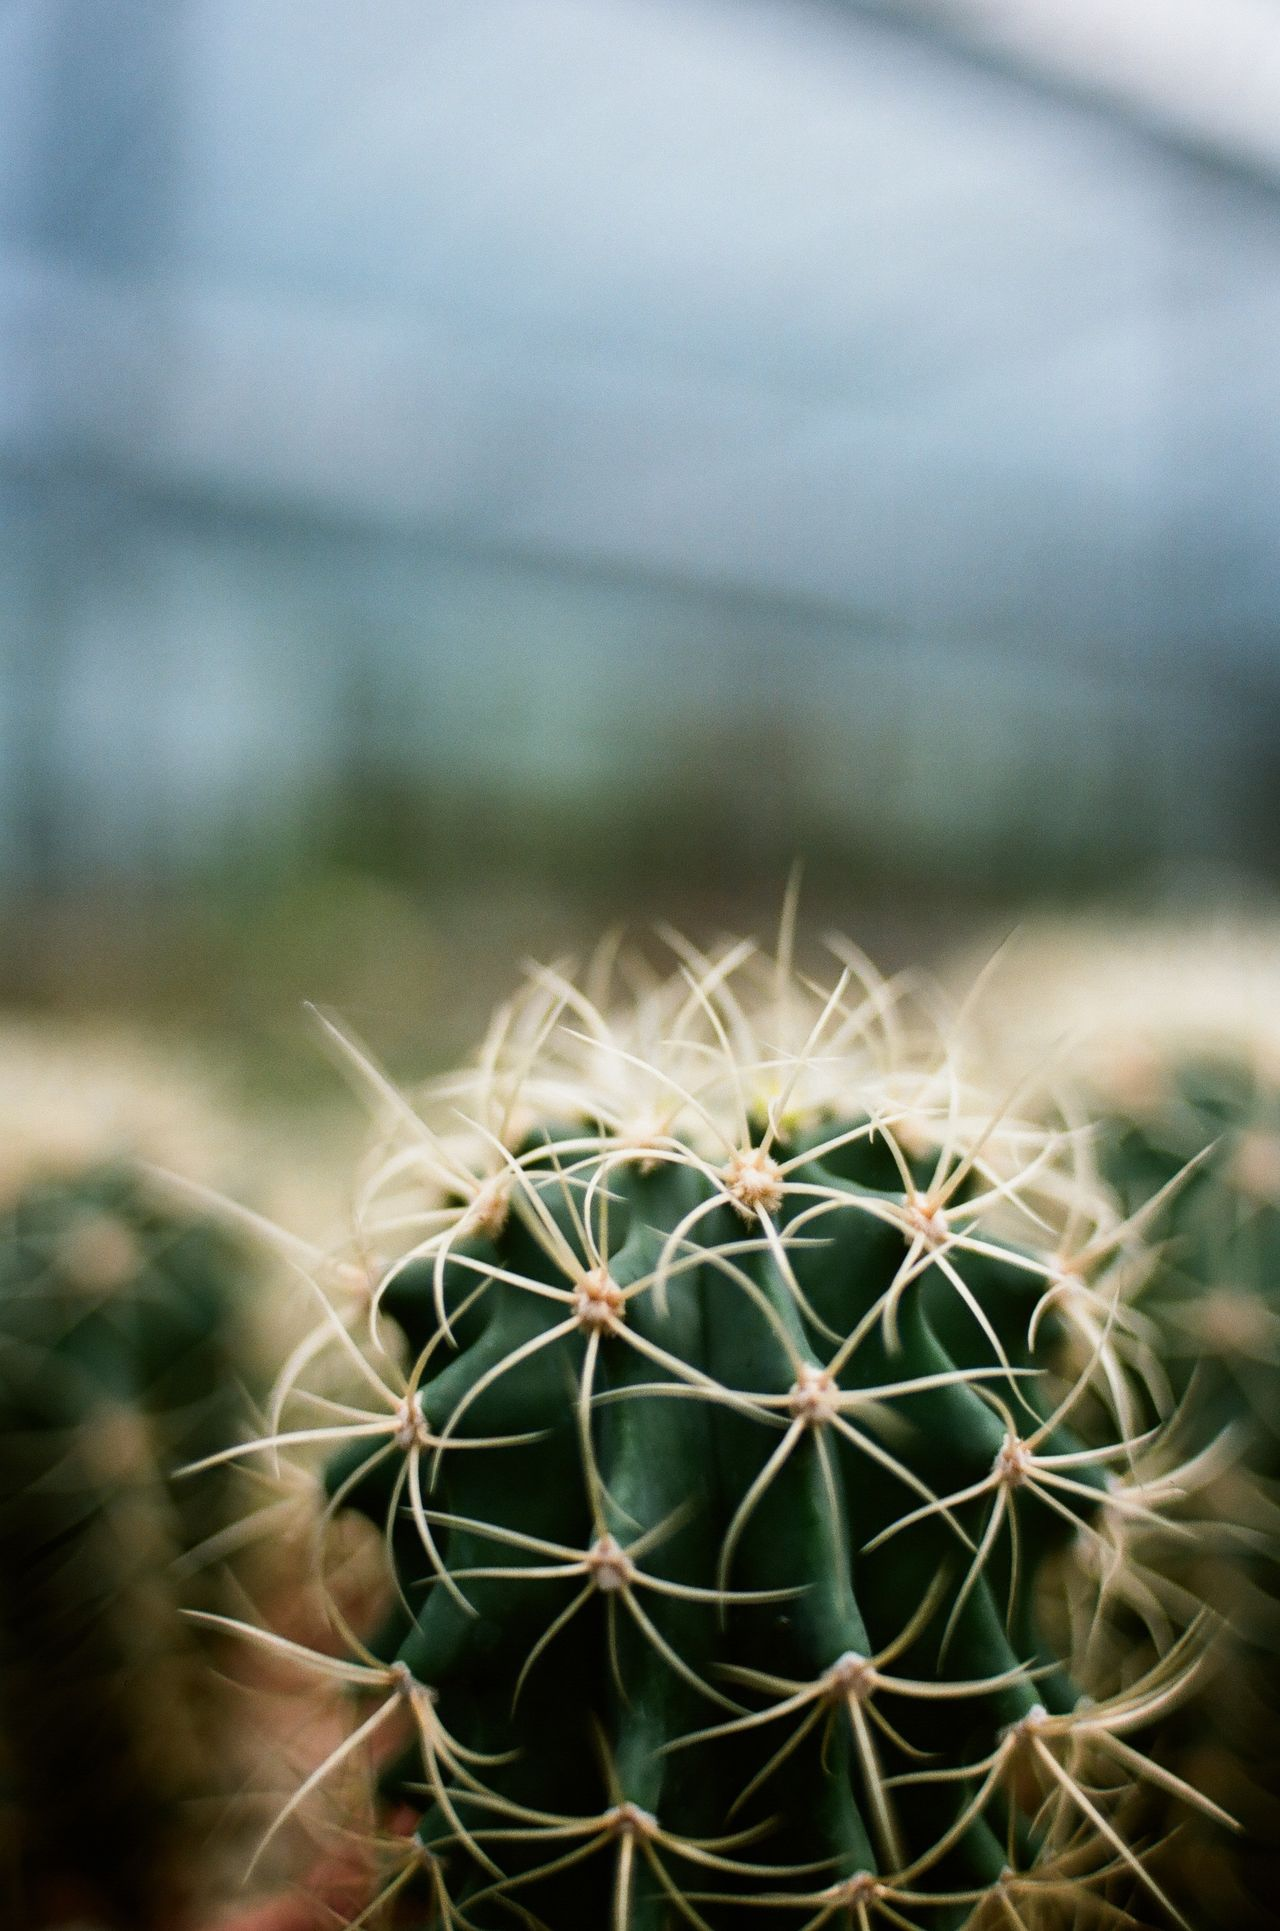 Beauty In Nature Cactus Close-up Day Film Photography Filmisnotdead Focus On Foreground Green Color Growth Nature No People Outdoors Plant Spiked Succulent Plant Succulents Thorn